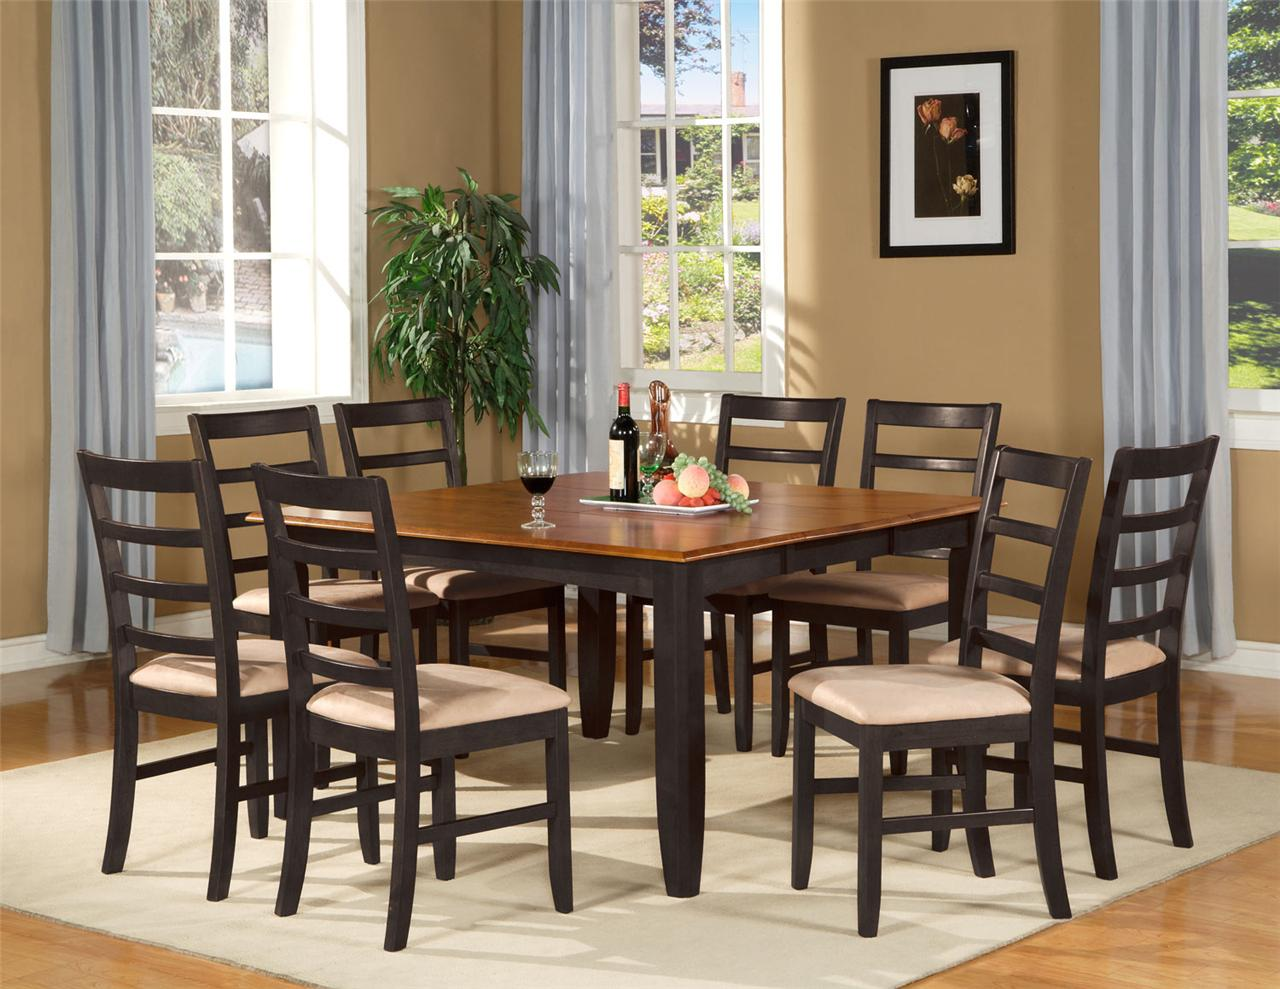 Pc Square Dining Room Table For 8 Person Seat Chairs Set Furniture